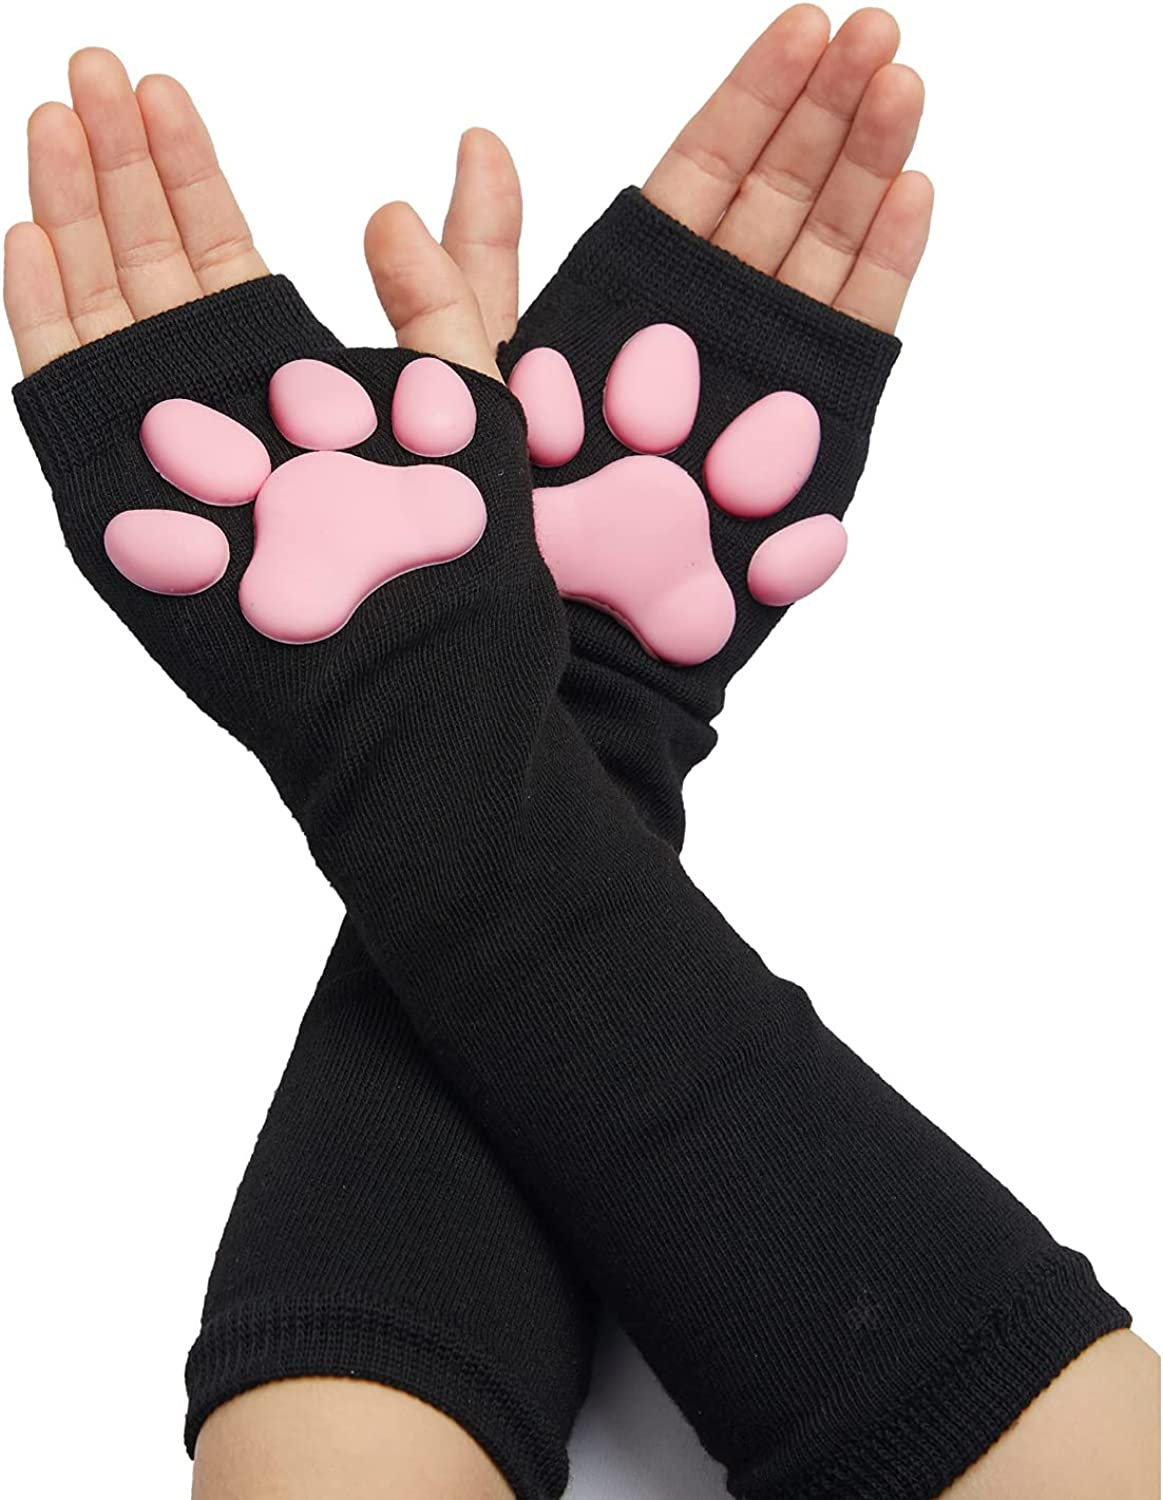 Cute Cat Paw Mittens Gloves, Kawaii Cat Cosplay Kawaii Soft 3D Toes Beans Fingerless Cat Claw Paws Pad Sleeve